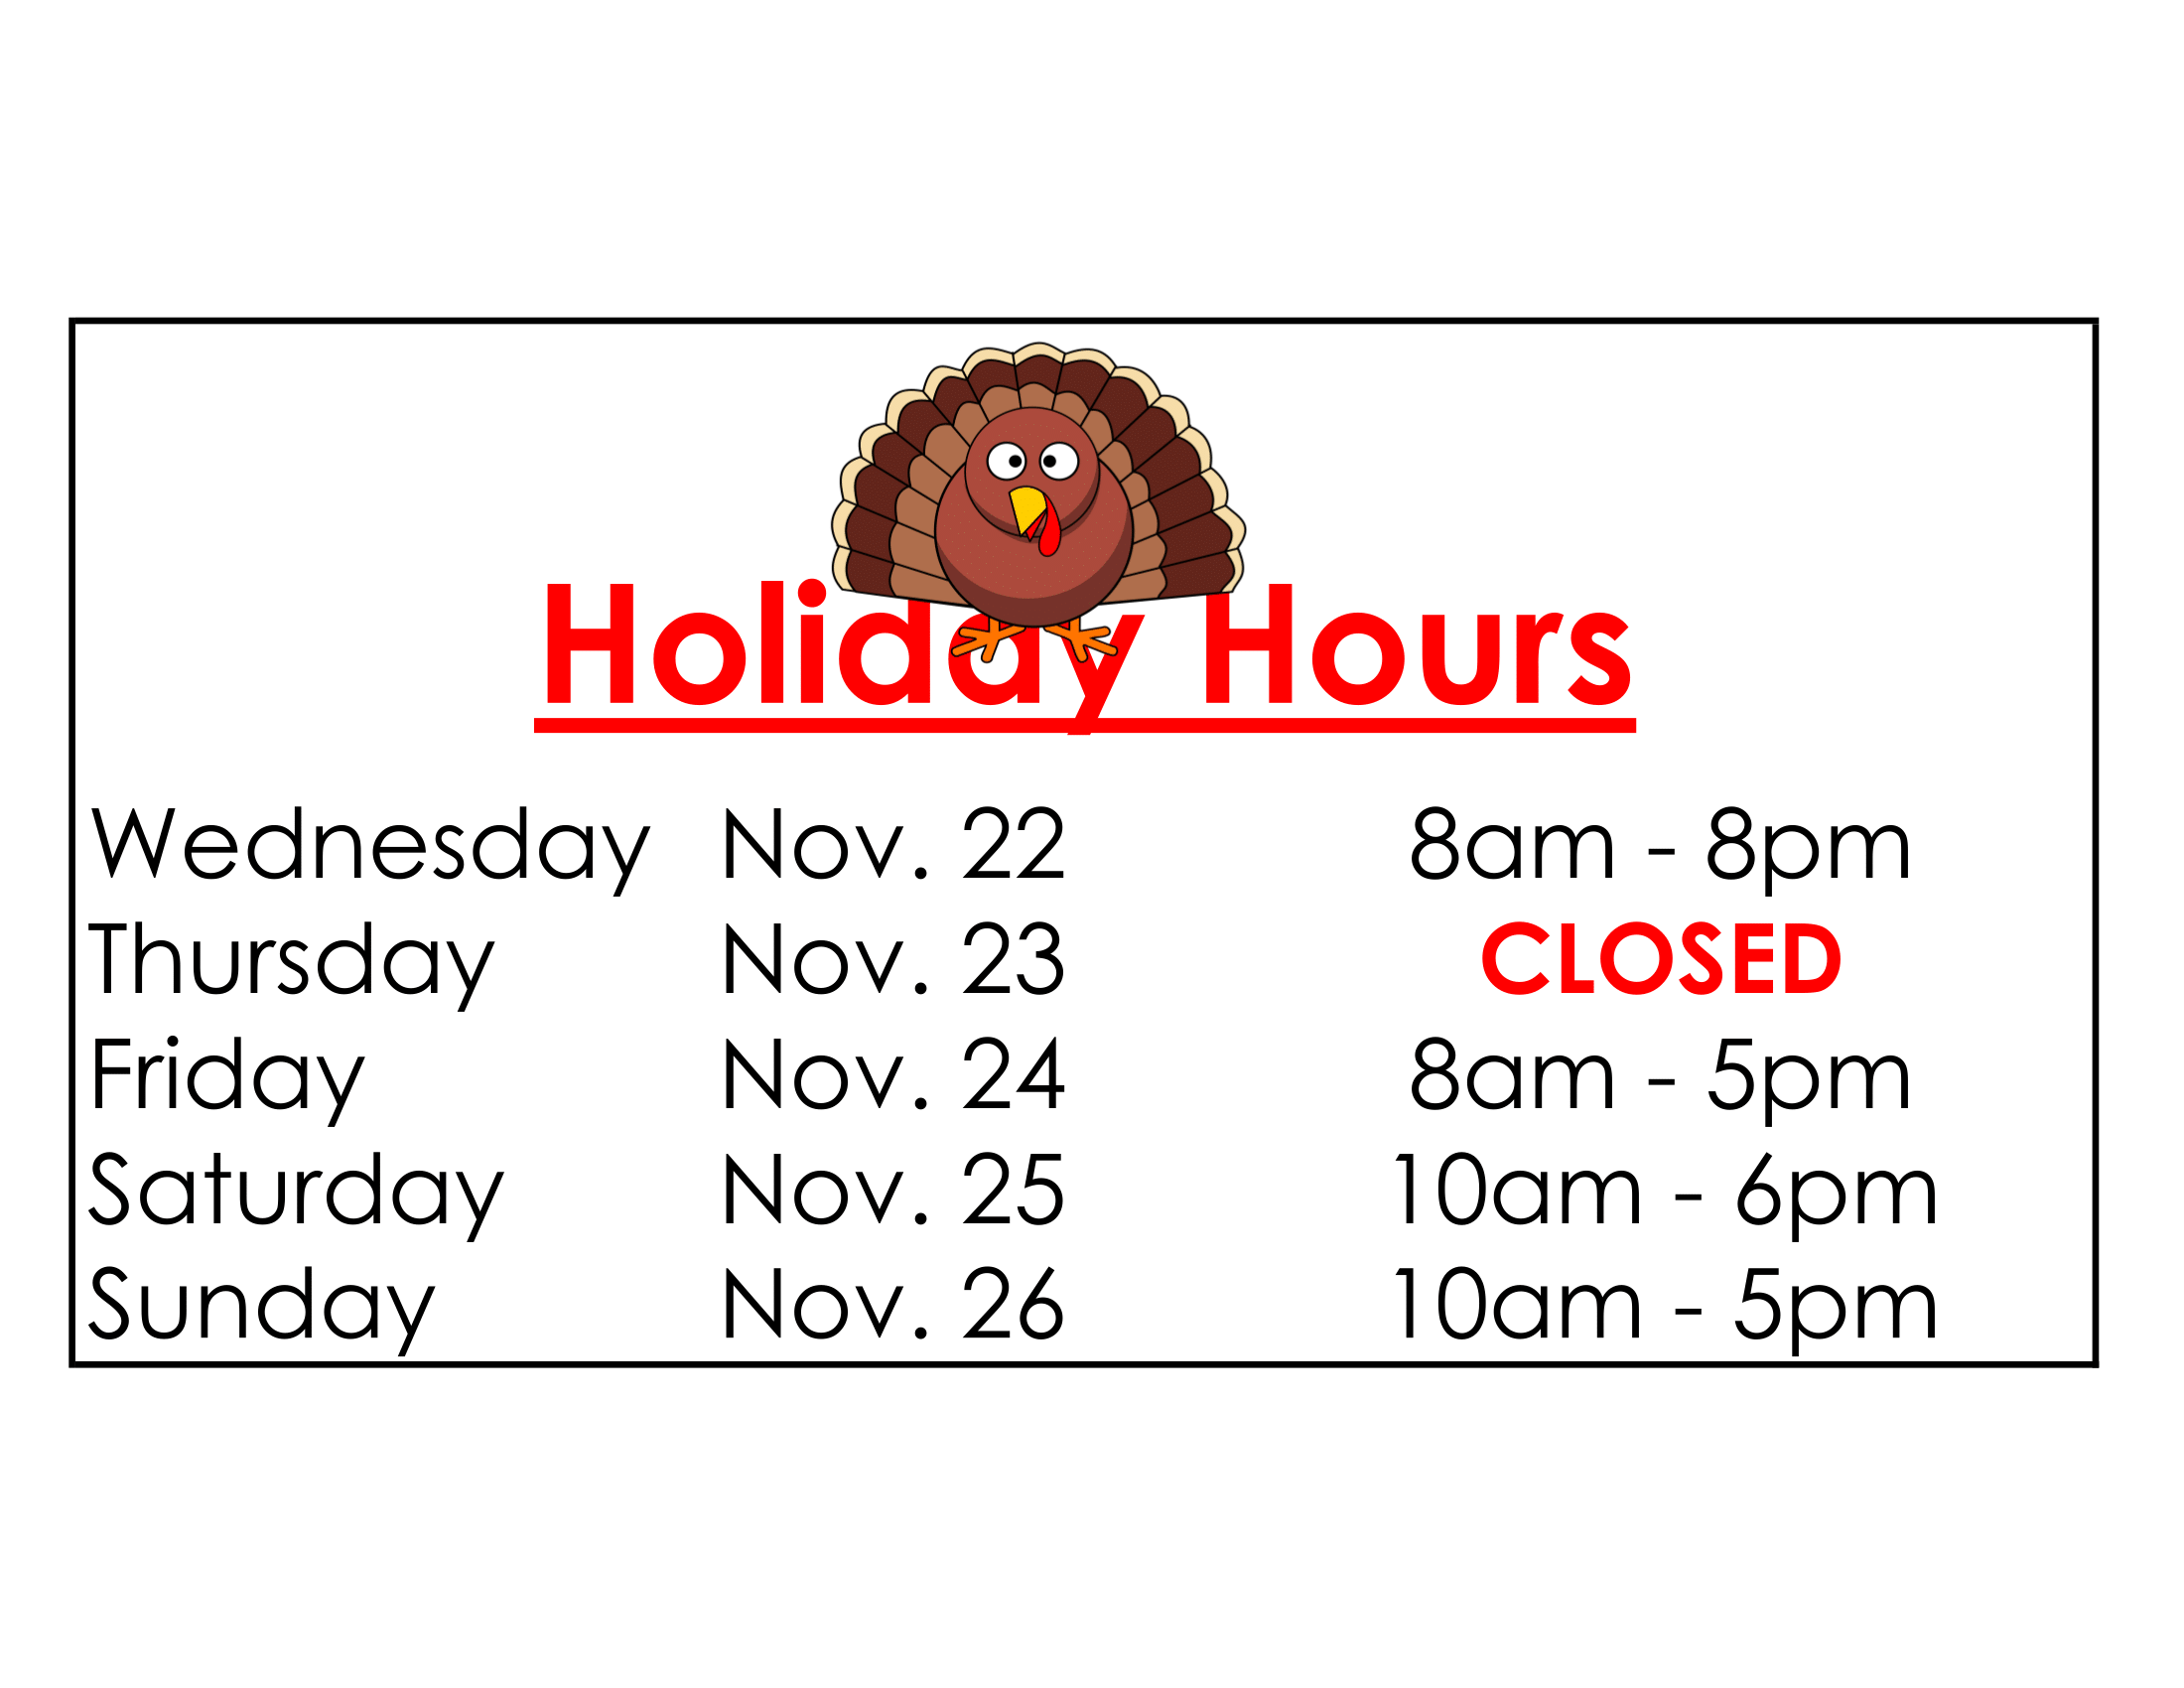 Thanksgiving Holiday Hours at Todd Layne Cleaners